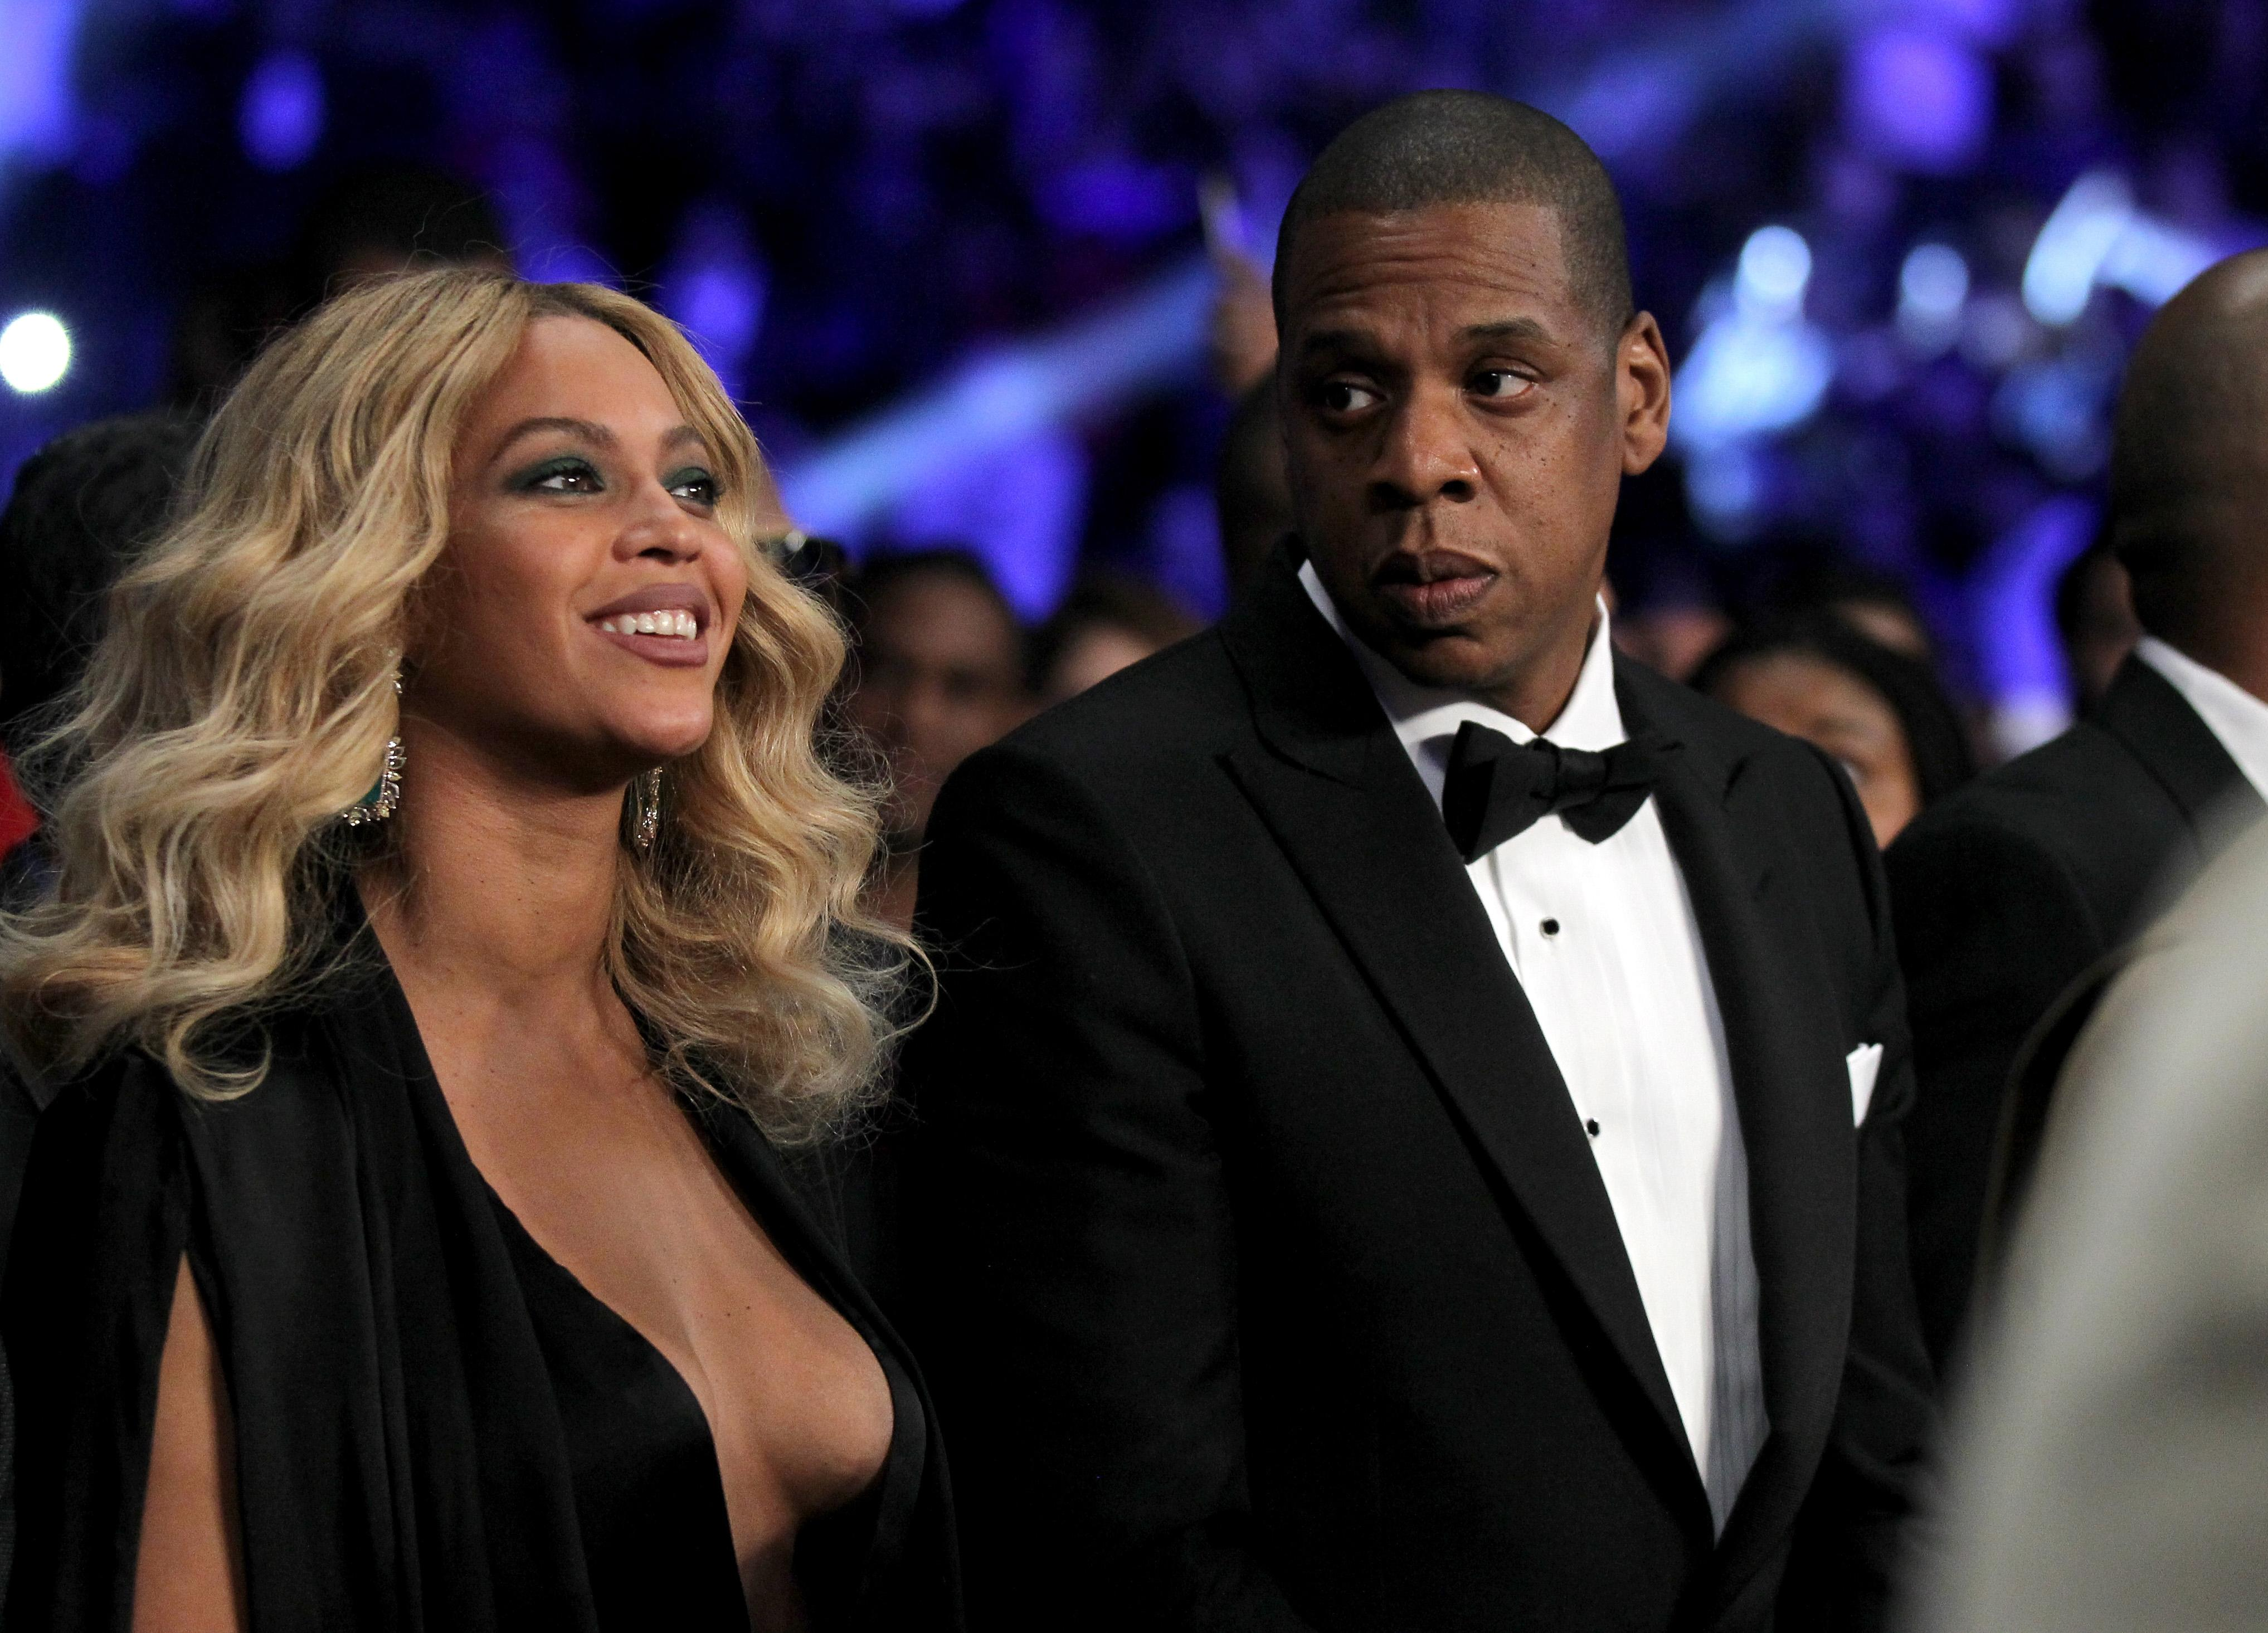 Concert review: Beyonce and Jay-Z take Columbus on the